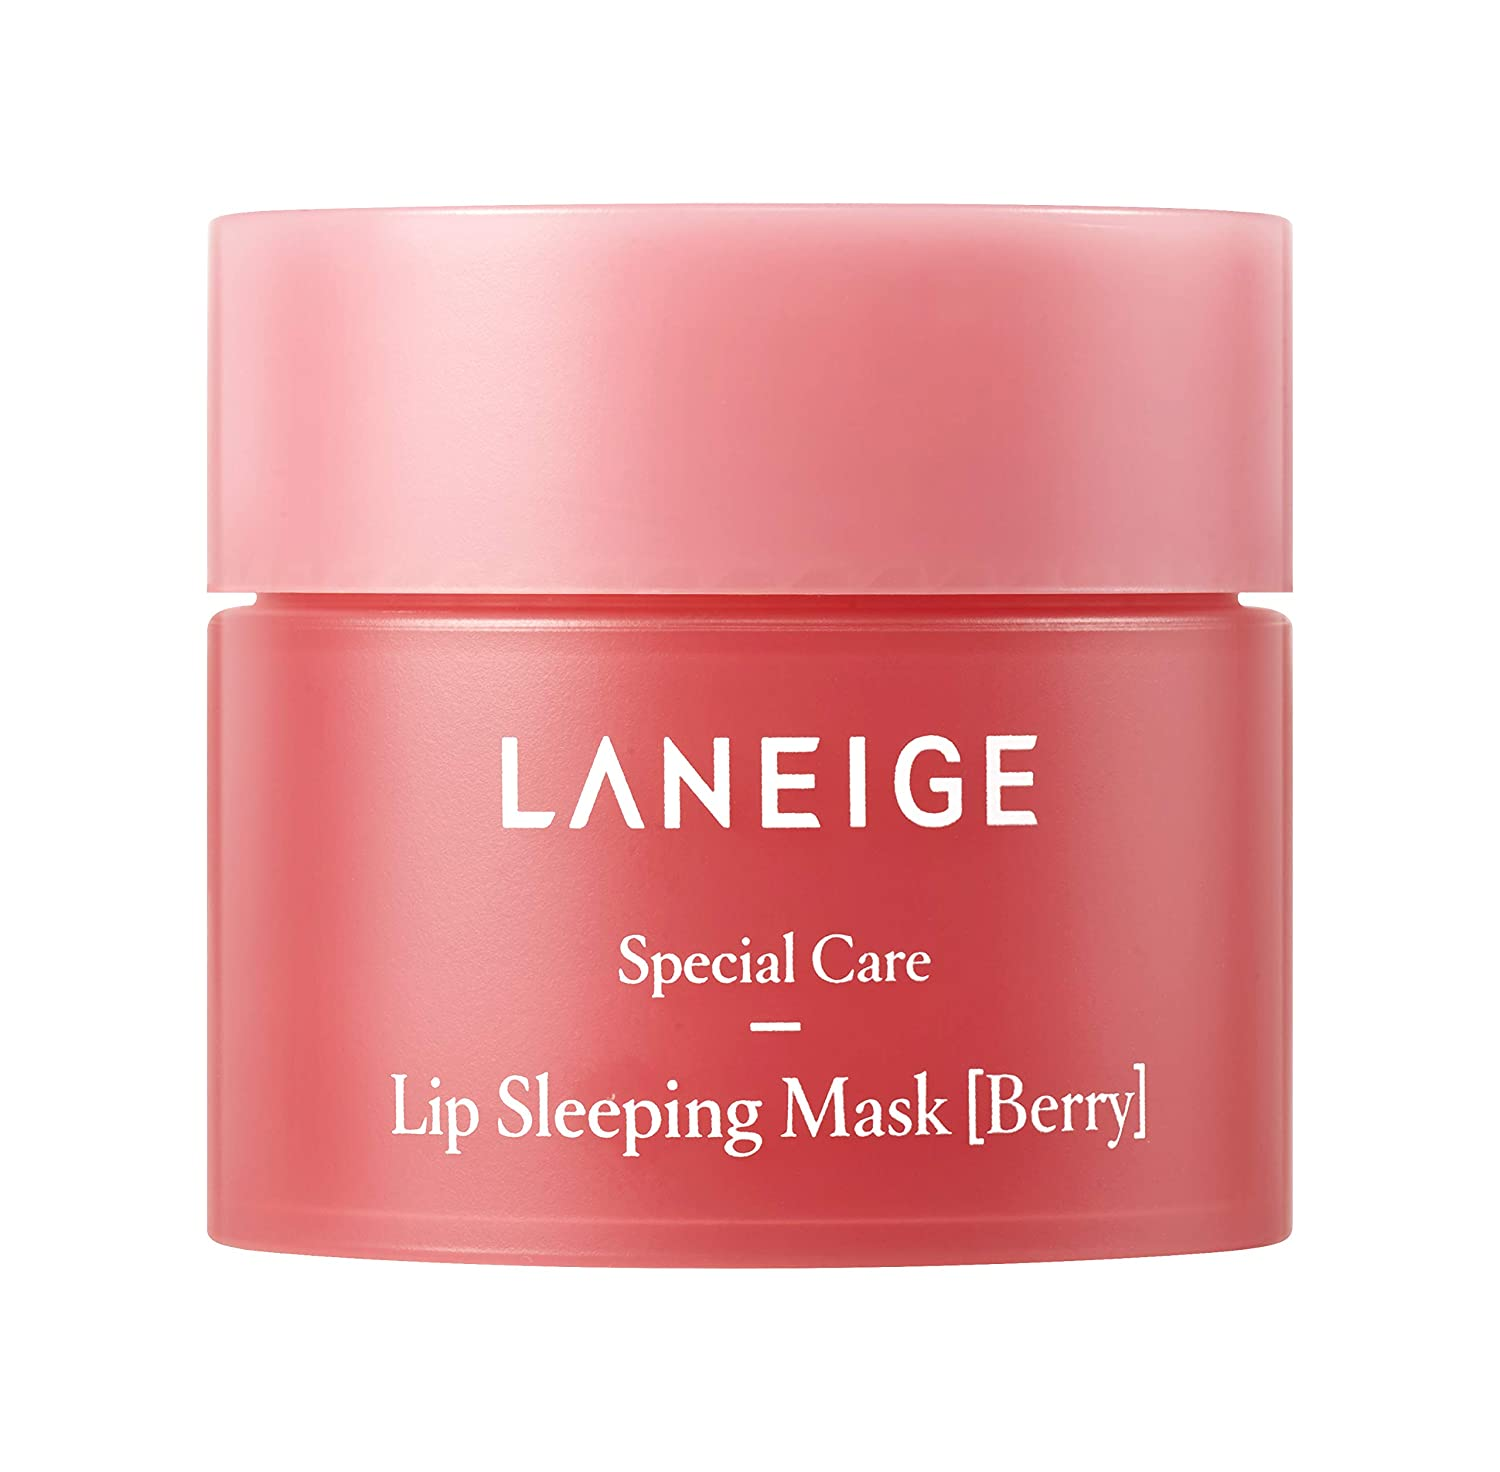 LANEIGE Lip Sleeping Mask [Berry]_8g: Amazon.in: Beauty